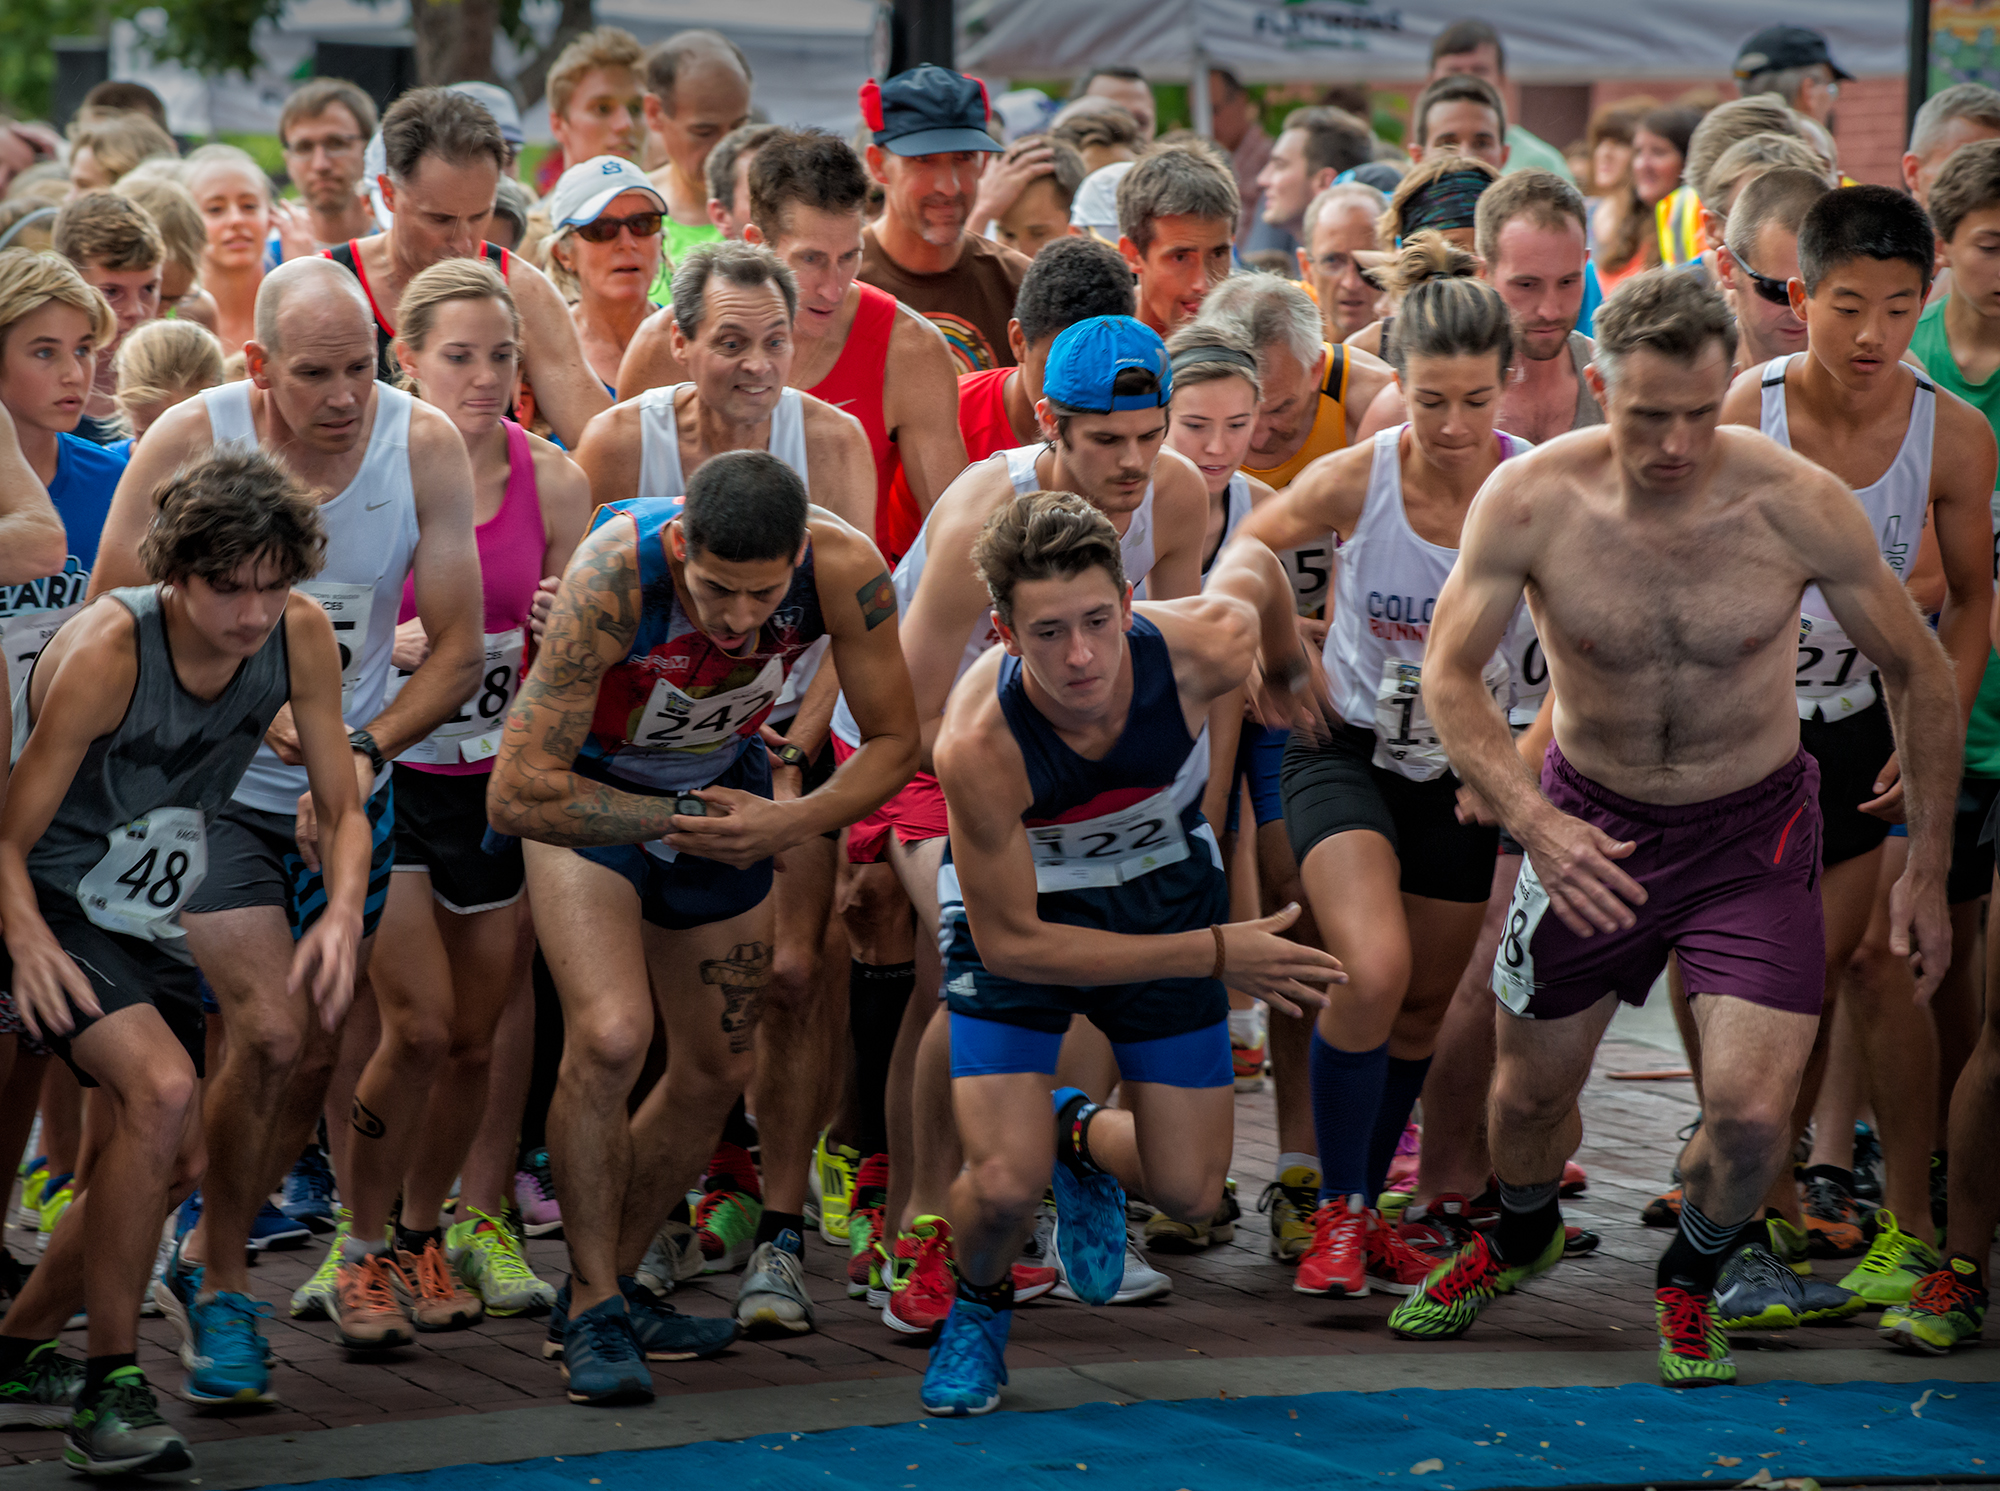 Expressions at the Gun, Pearl Street Mile. Boulder, Colorado, 2016